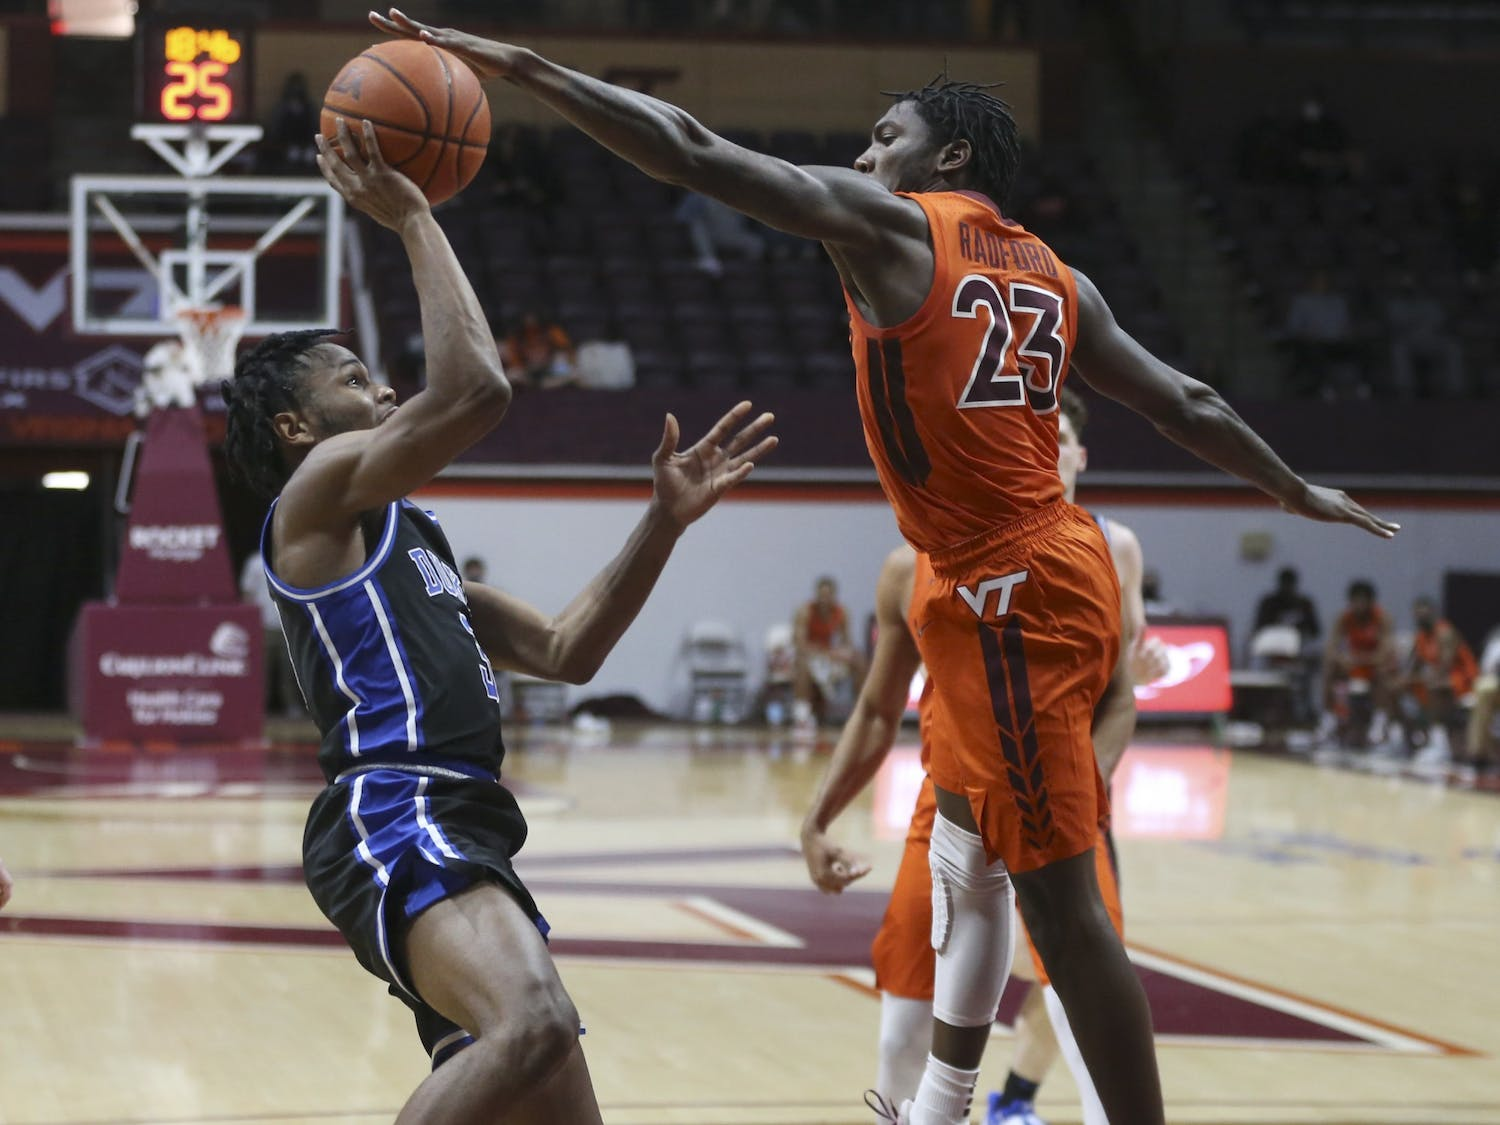 Tuesday's game against Virginia Tech was certainly not Duke's prettiest game in recent memory.